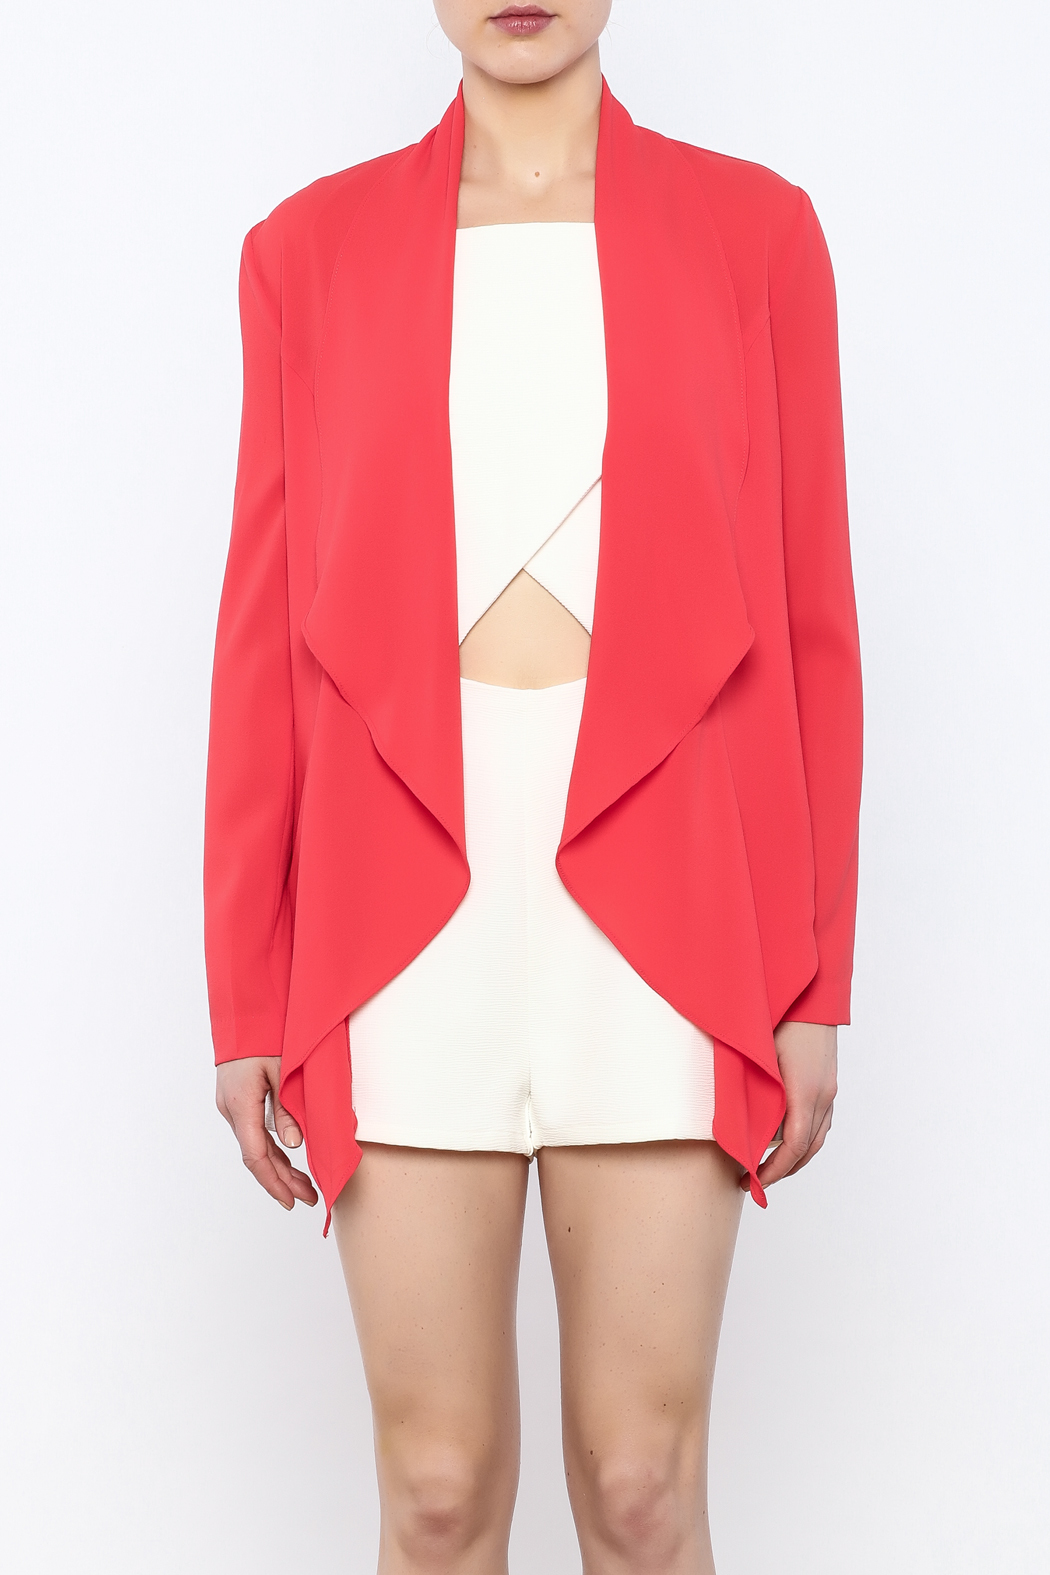 Aryn K Cropped Ruffle Light Jacket - Side Cropped Image